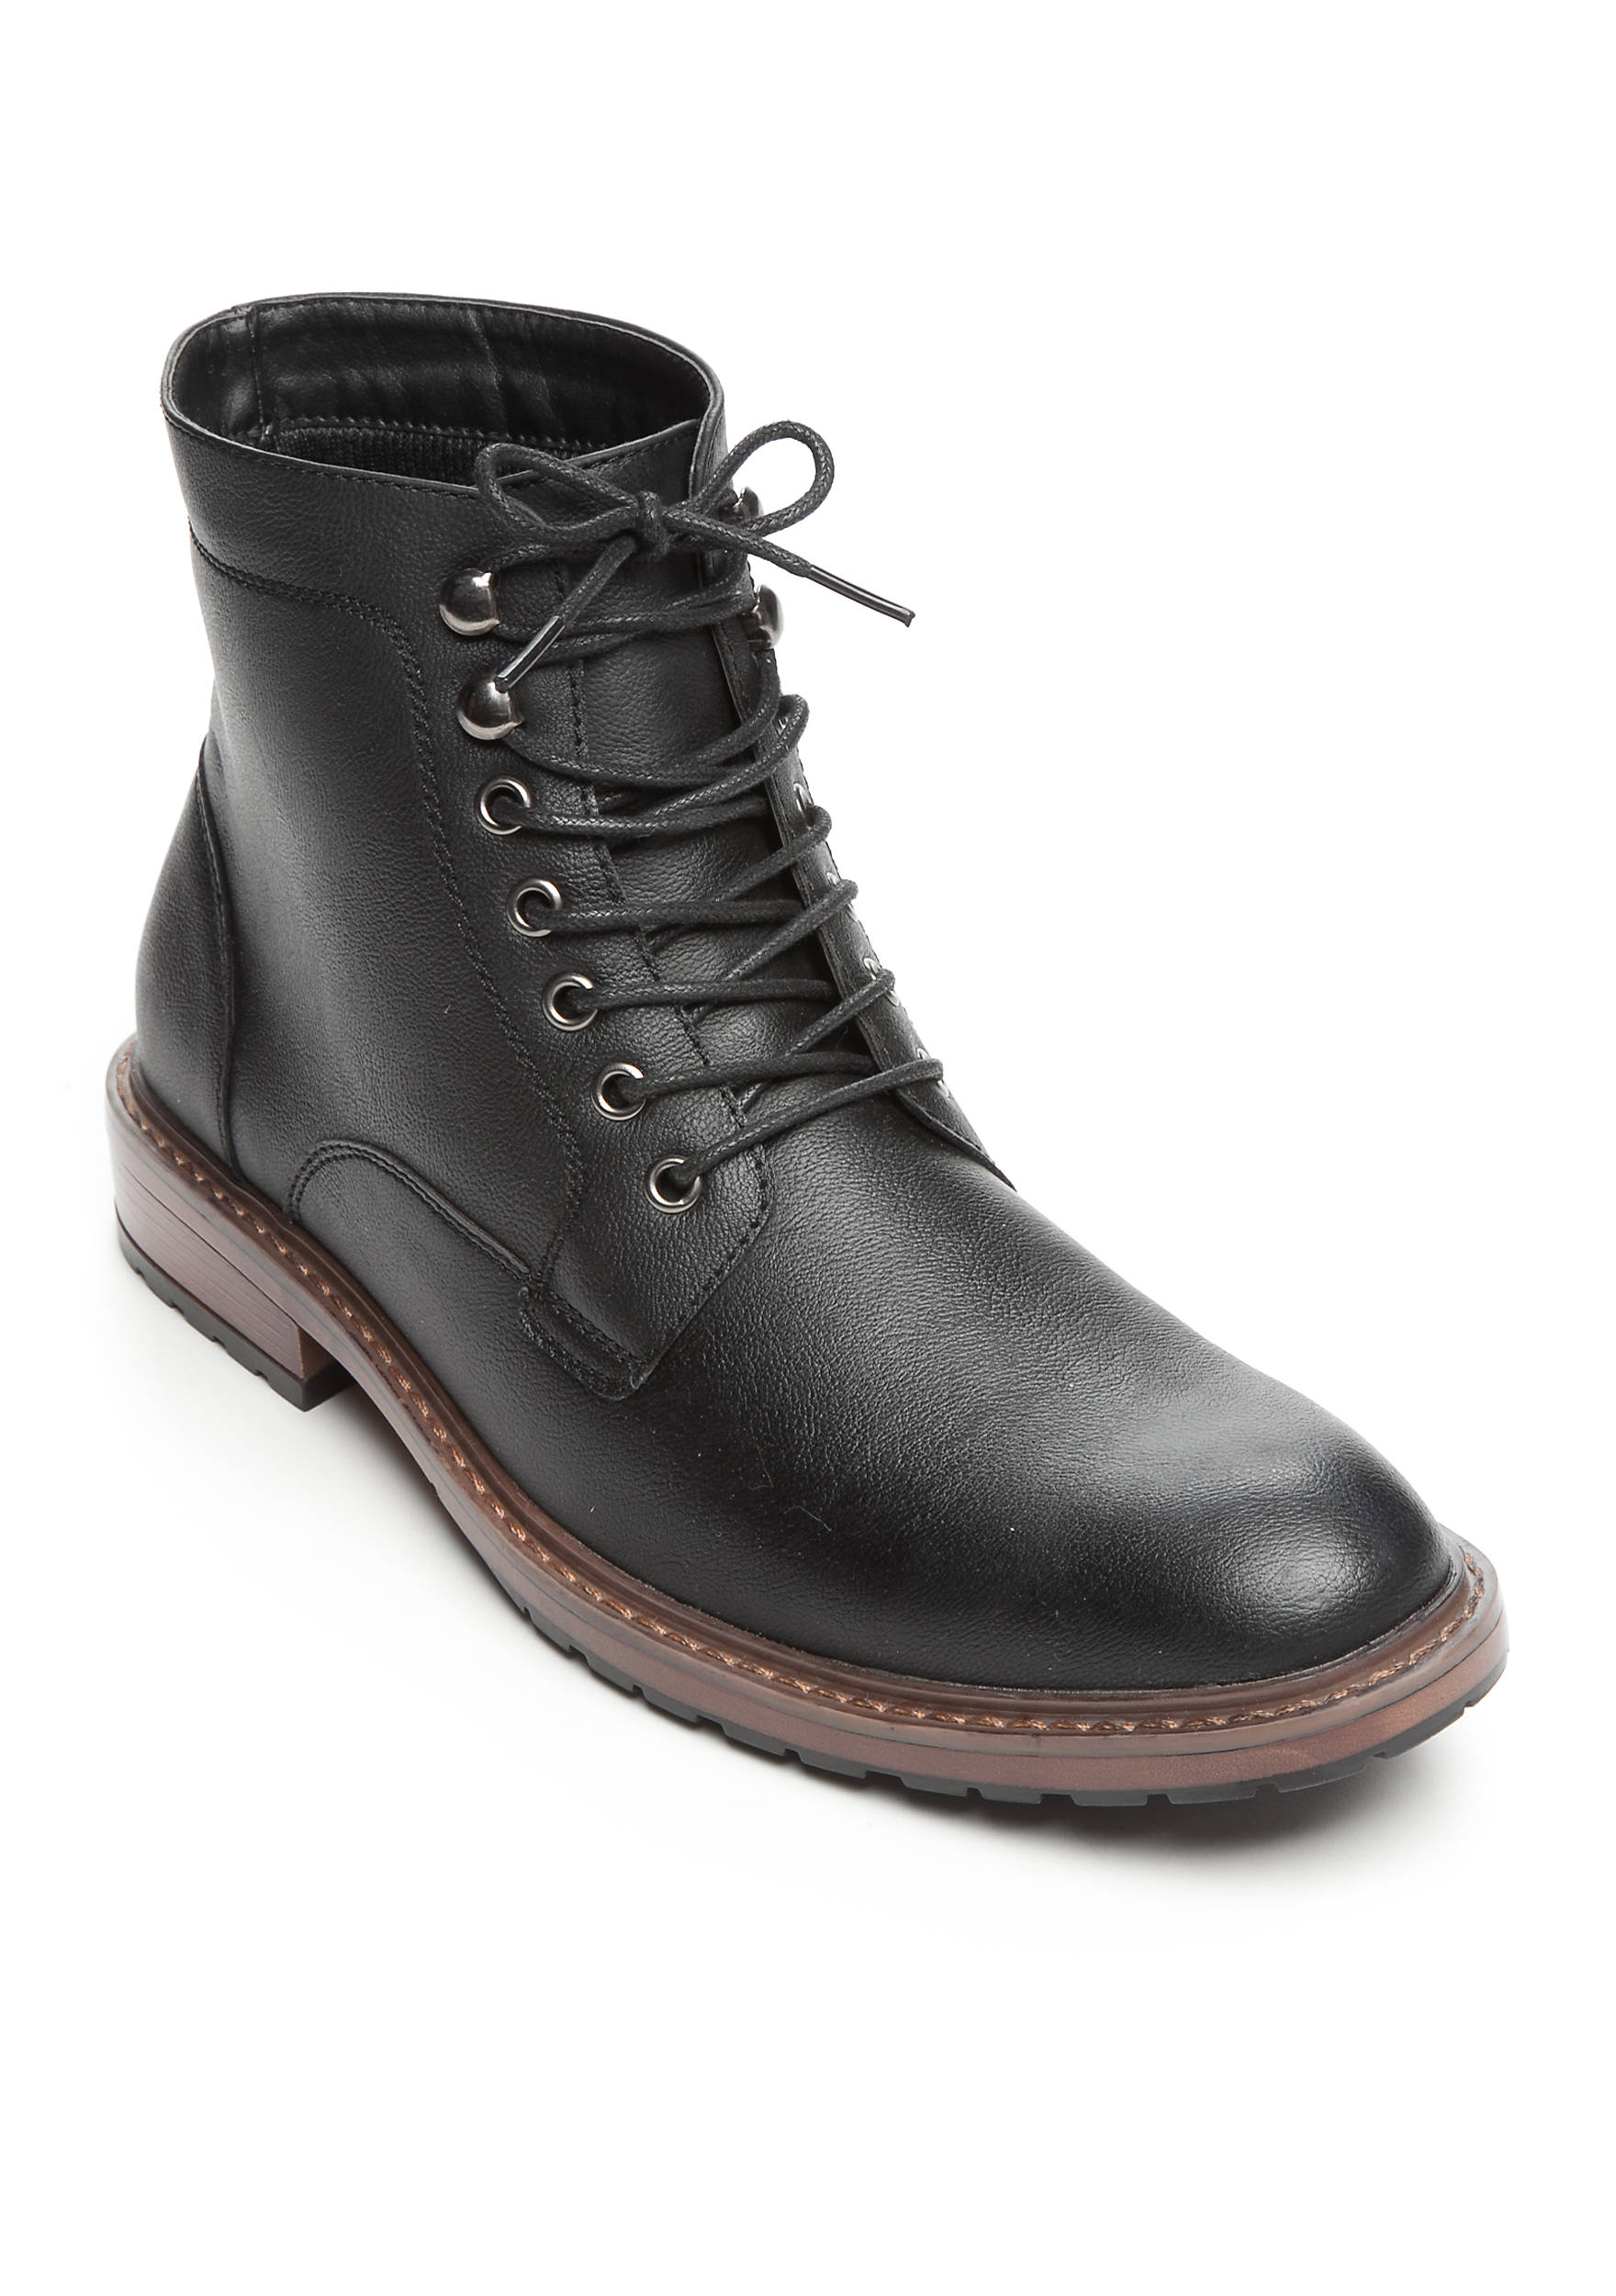 Perry Ellis® Gunner Boot. 3900274PPFST14120A2. Images